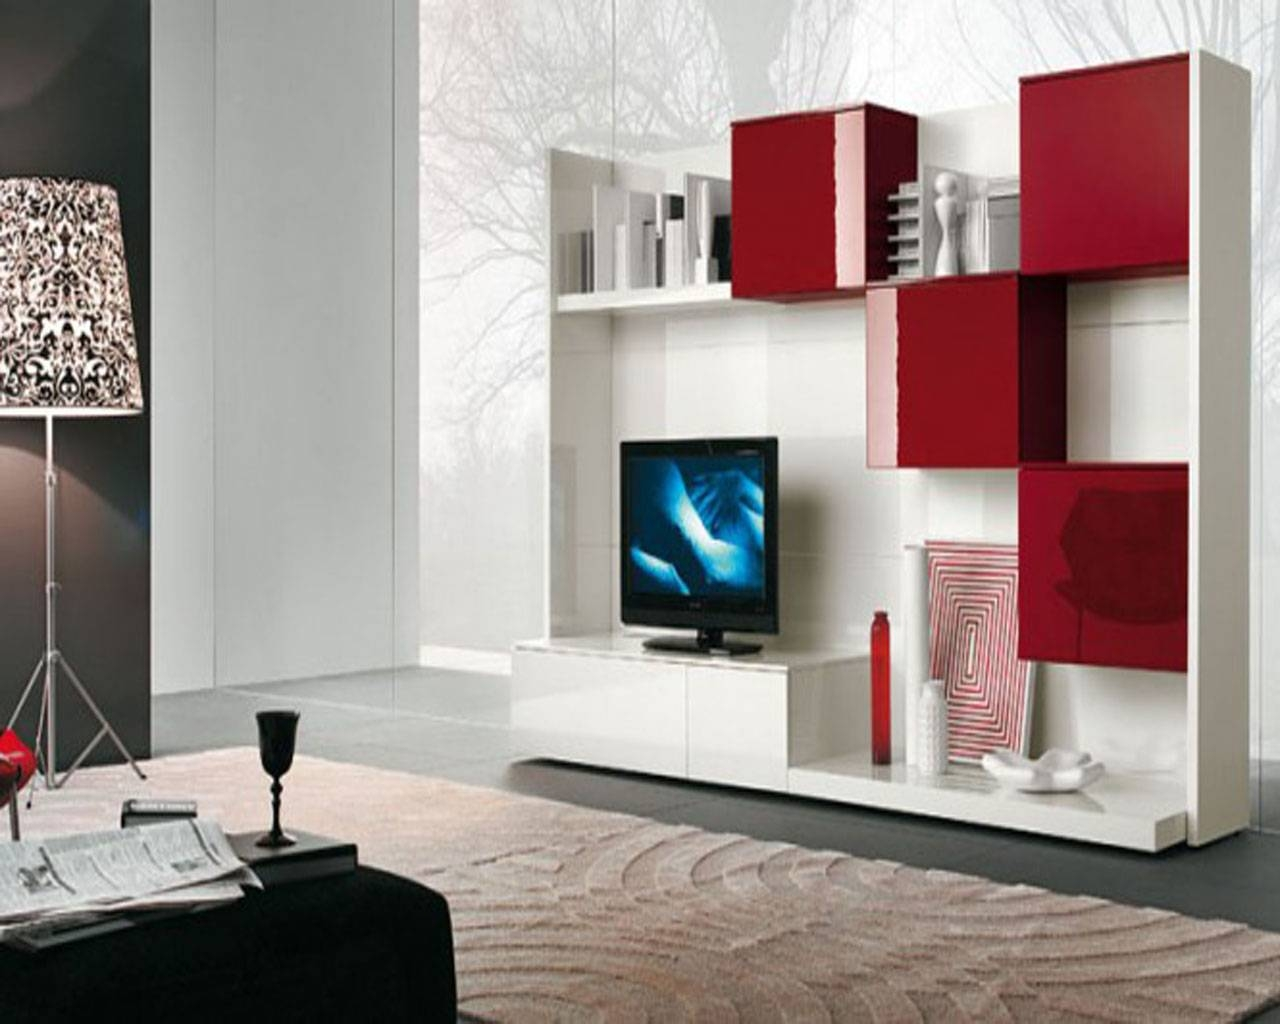 Tv Wall Shelves Where Can Get The Case And Wood Shelf 2017 With Throughout Modern Lcd Tv Cases (View 15 of 15)